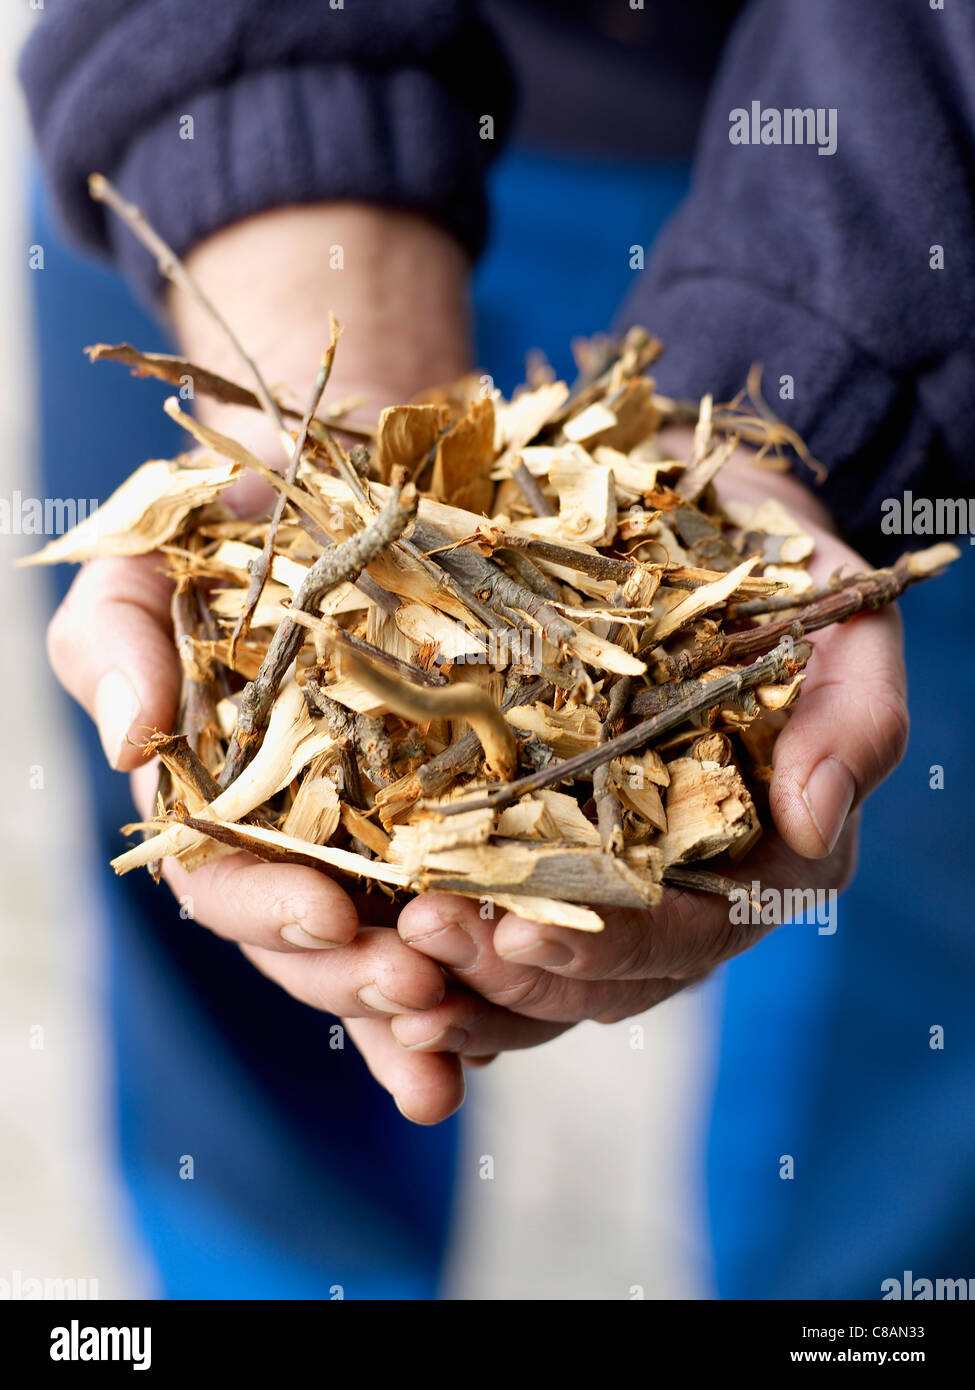 Handful of shavings and twigs - Stock Image